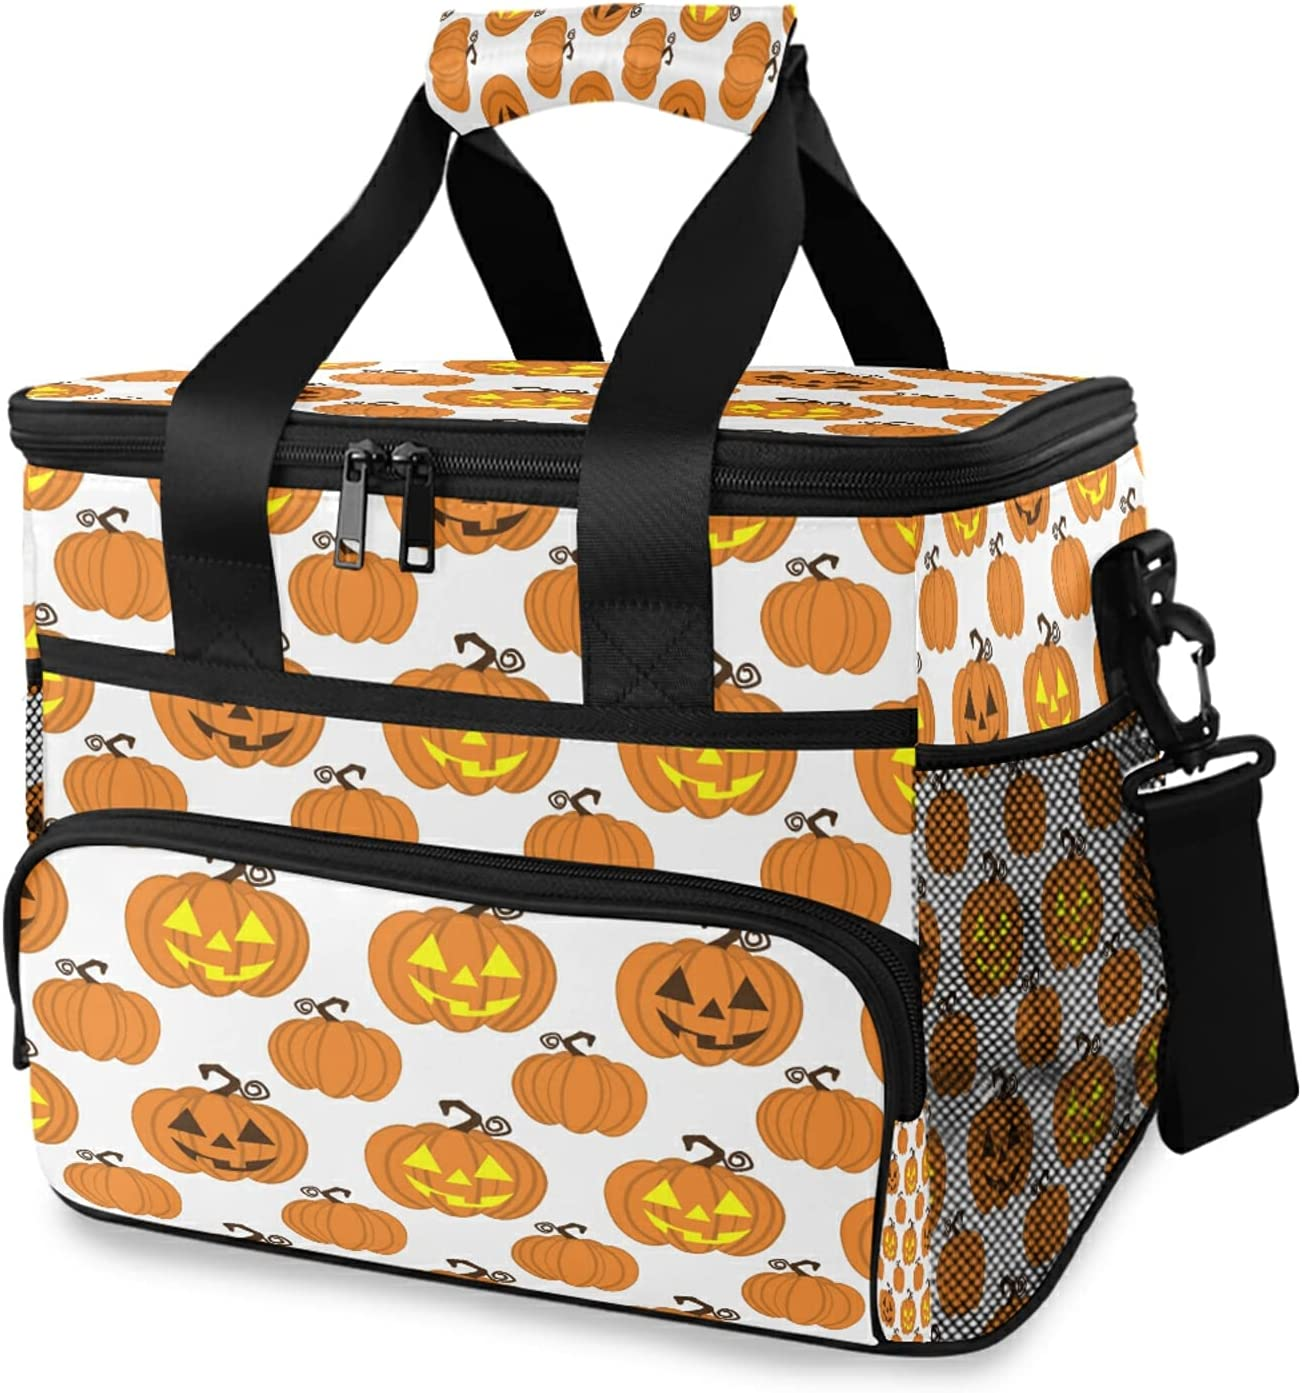 xigua Columbus Mall Happy Halloween High quality new Cooler Bag L Strap Insulated Shoulder with